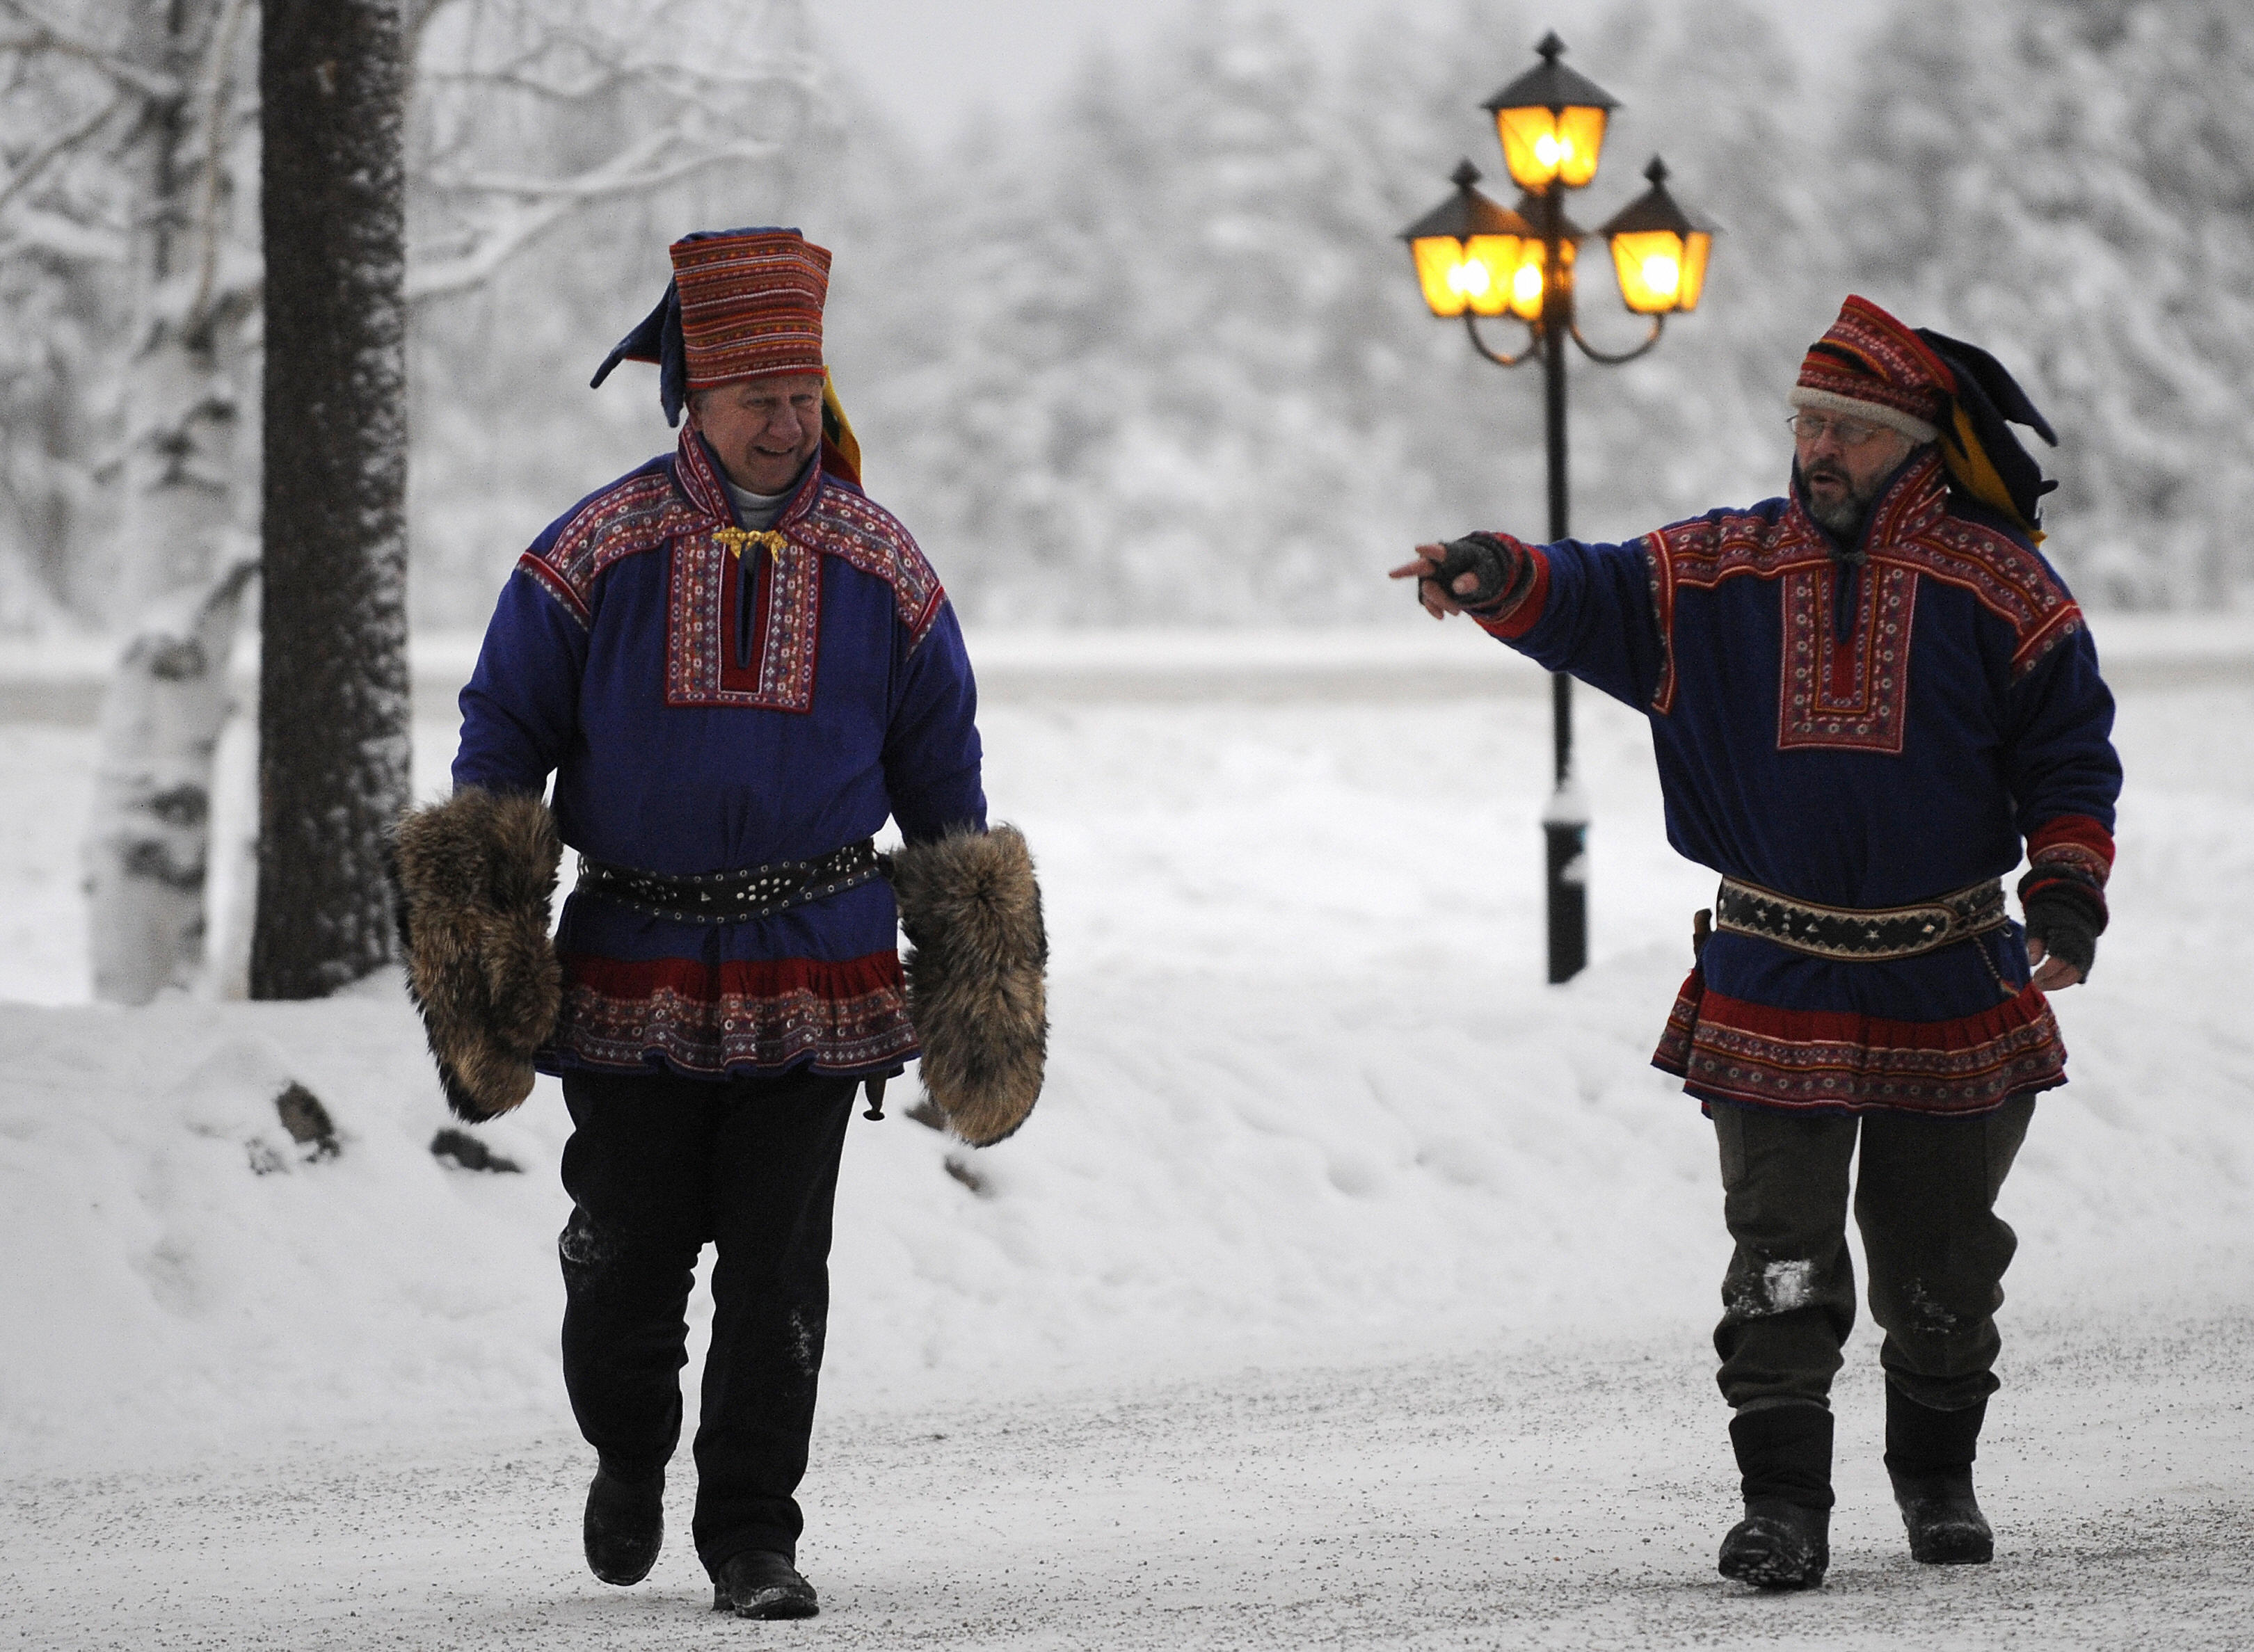 To men in traditional Sami dress in Arctic Finland. A new smart phone app provides a Sami character keyboard. (Olivier Morin/AFP/Getty Images)